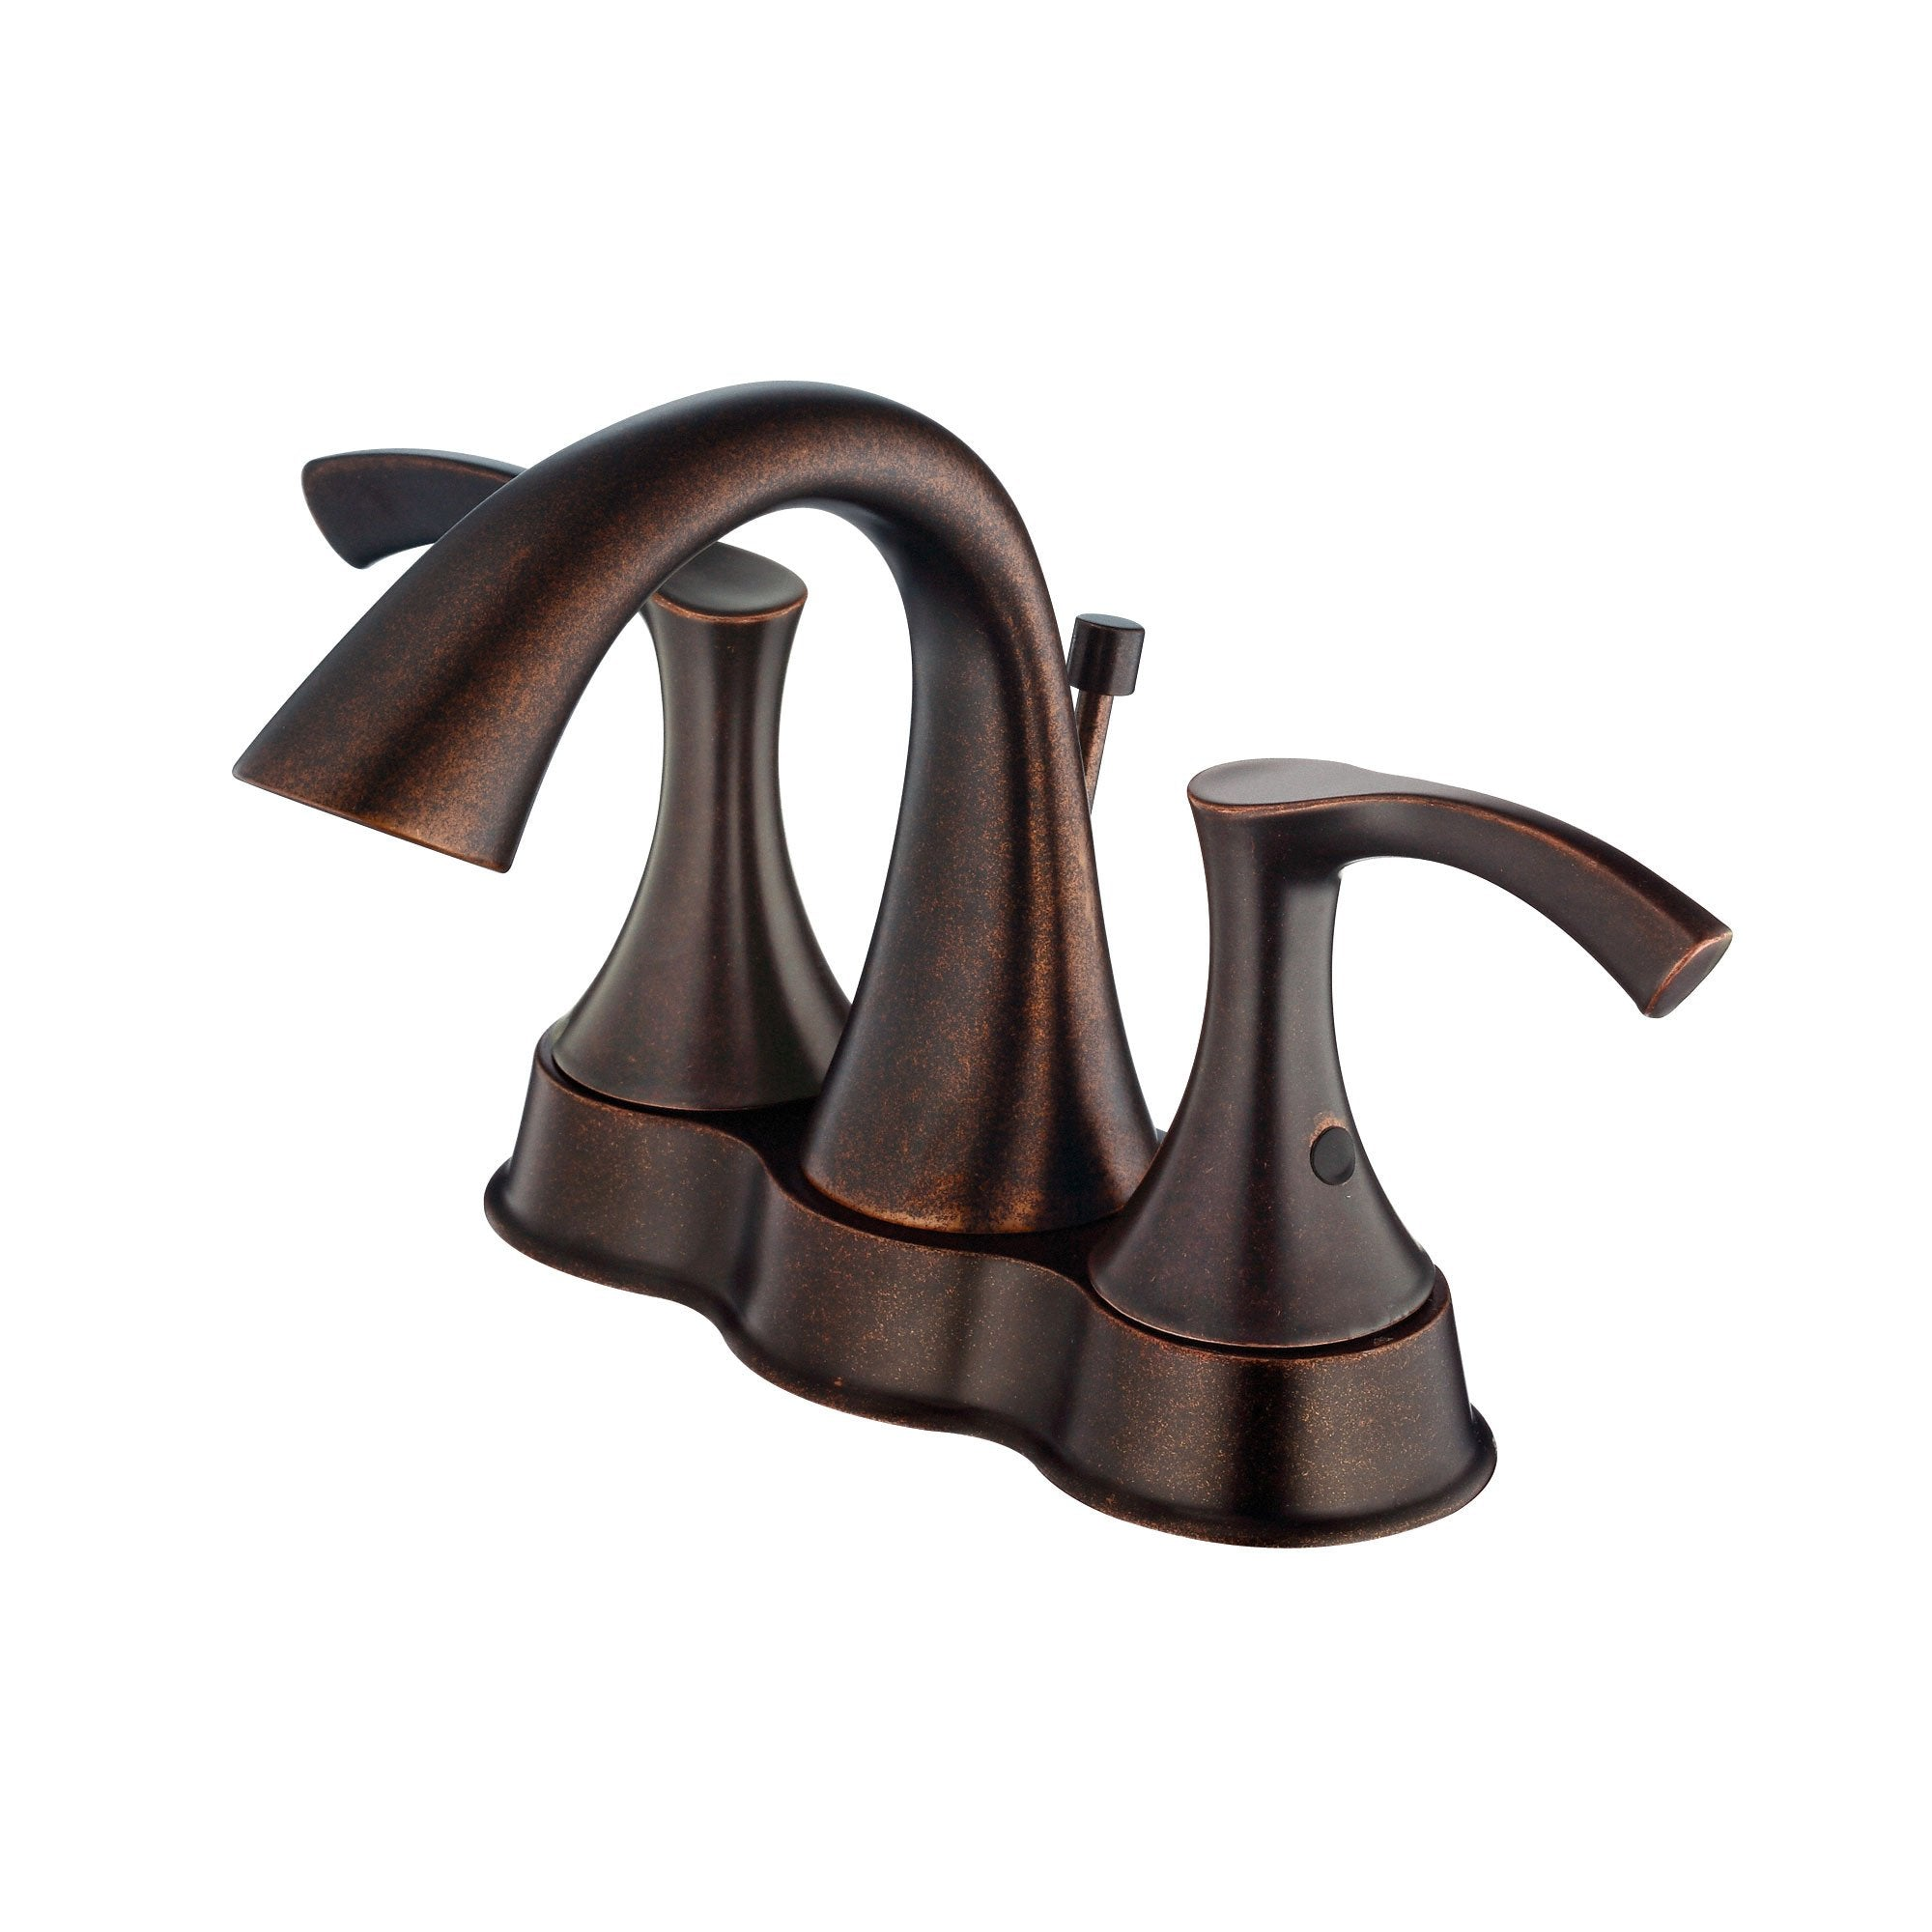 "Danze Antioch Tumbled Bronze 4"" Centerset Bathroom Sink Faucet w/ Pop-up Drain"